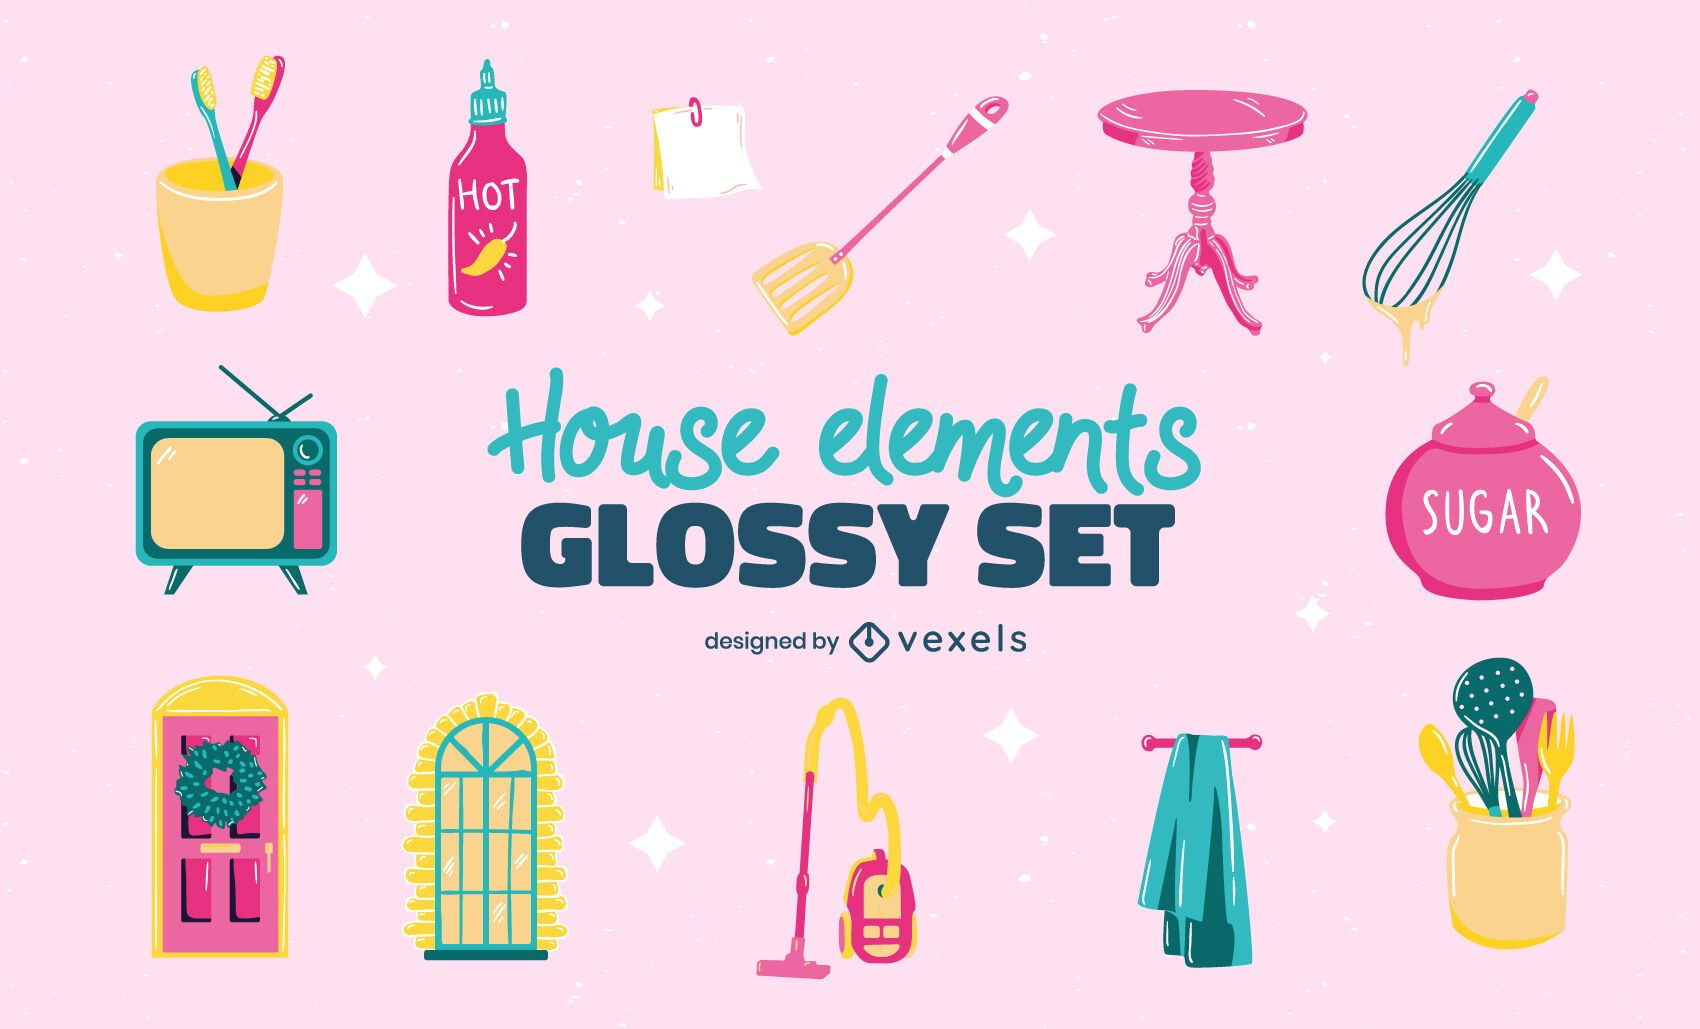 Household assorted elements glossy set